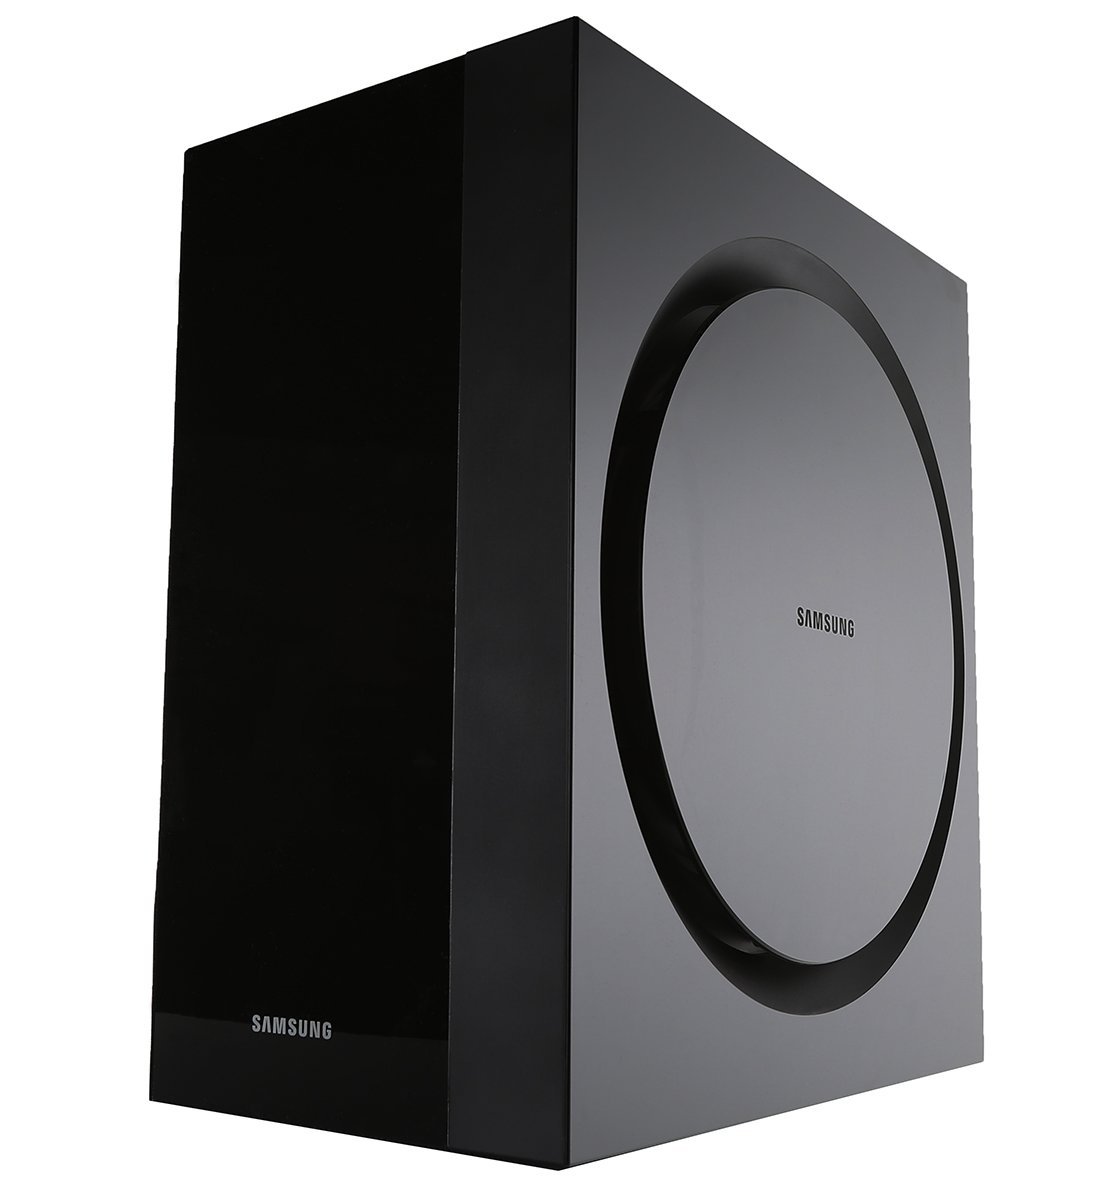 Samsung Ht J7750w 7 1ch Home Theatre System With Wireless Rear